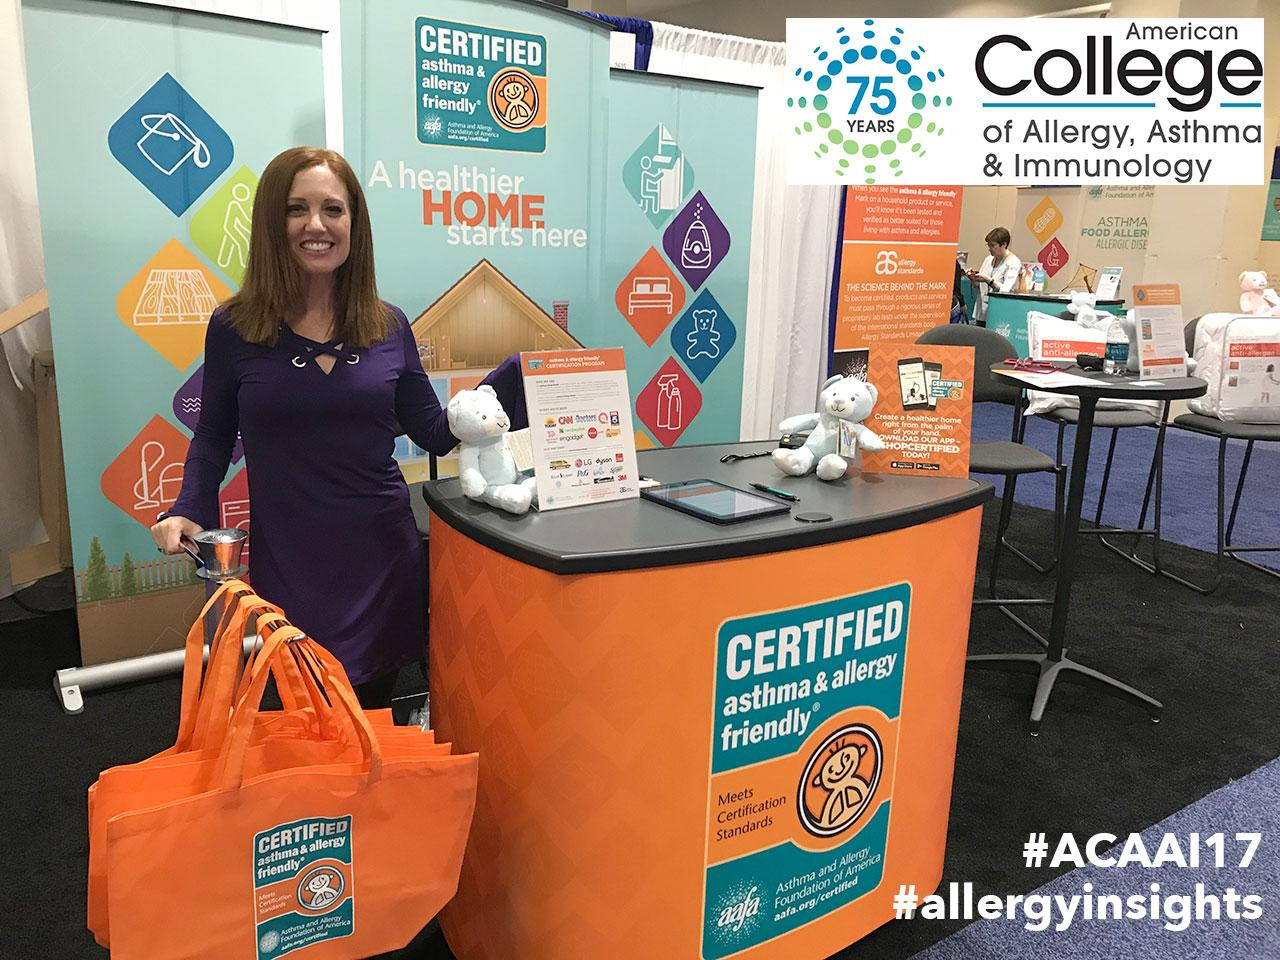 Michele Cassalia showcasing the asthma & allergy friendly Certification Program at the booth, ACAAI 2017